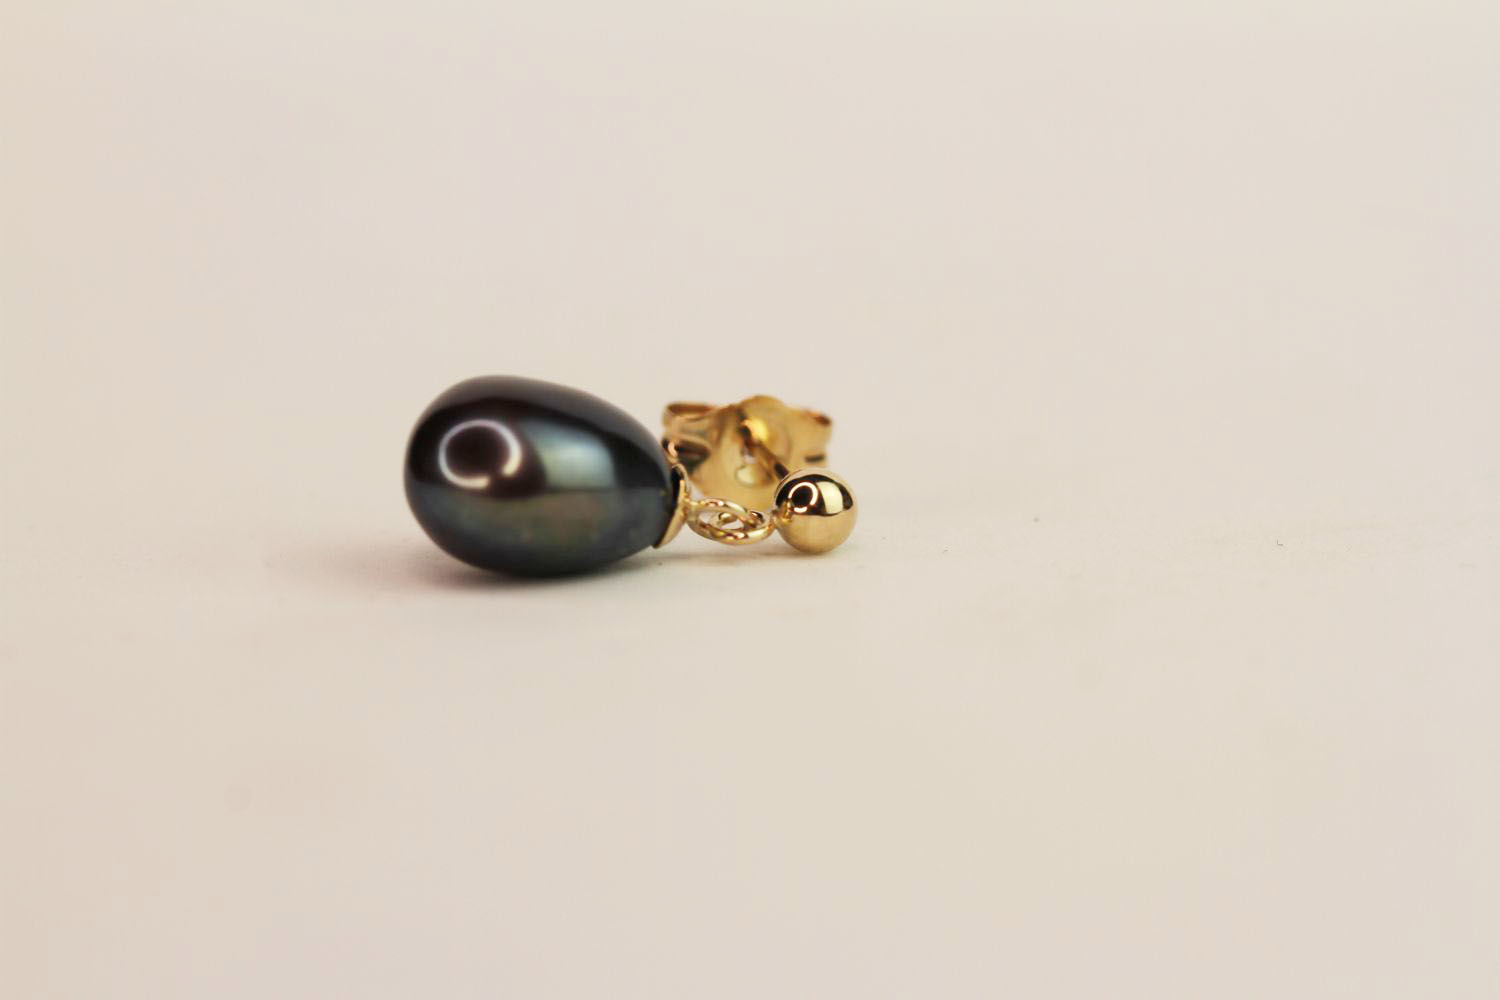 Pair of 9ct yellow gold drop studs with natural black pearls, boxed, butterfly backs. - Image 2 of 3